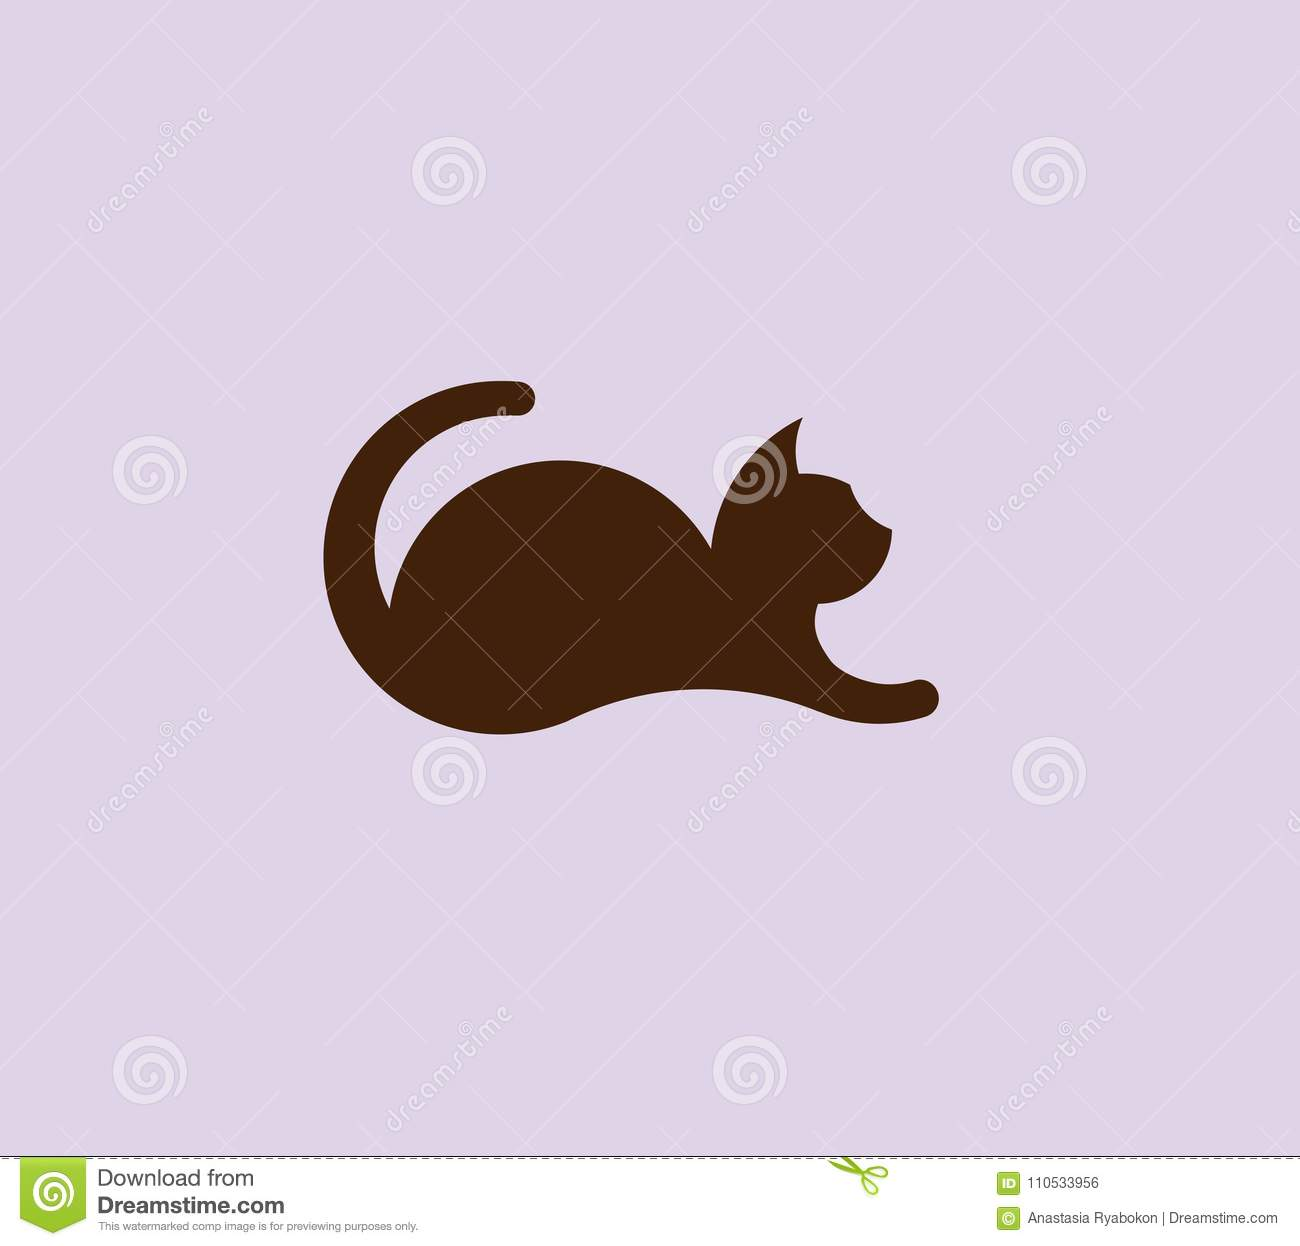 Lying cat logo design vector